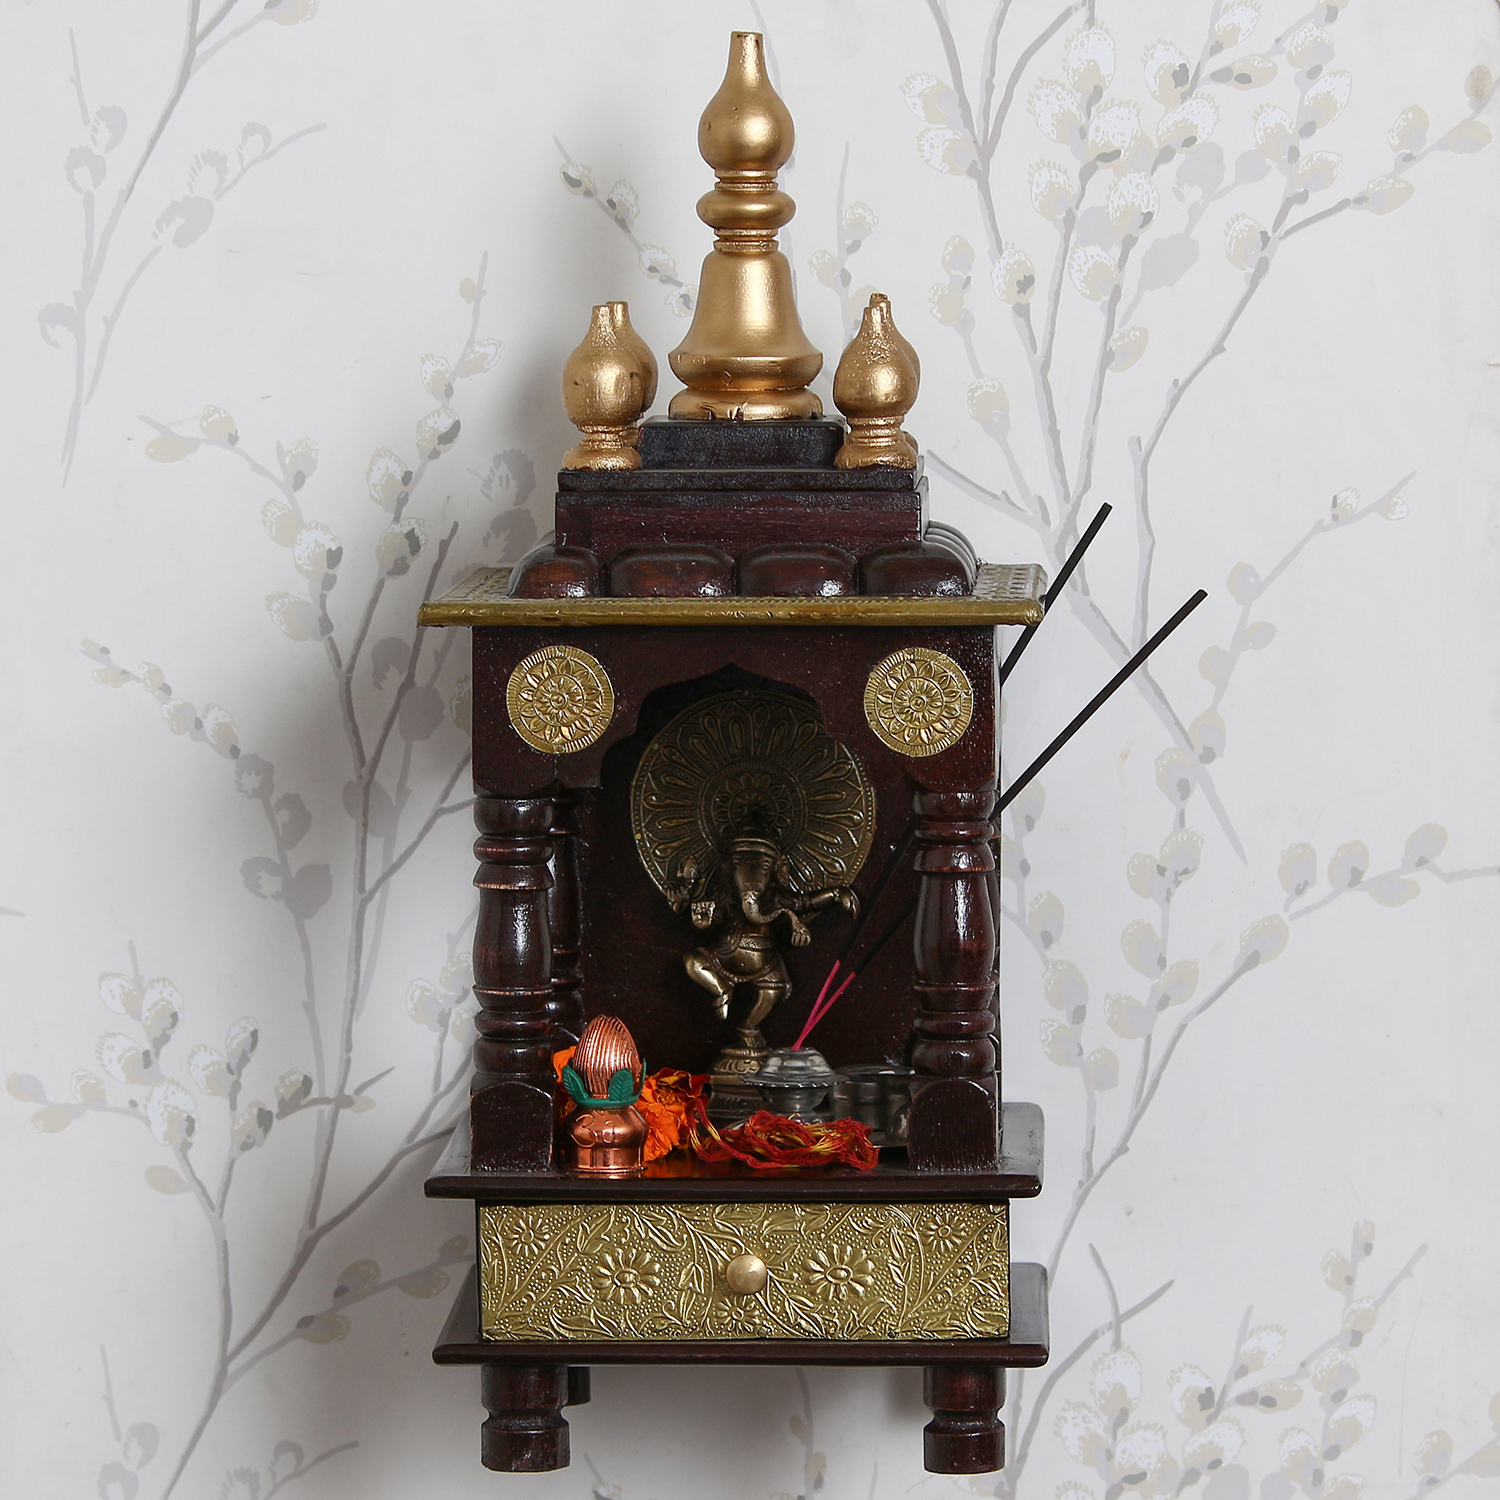 Decorative Premium Wooden Temple/Mandir with option to hang on wall Indian Home Decor